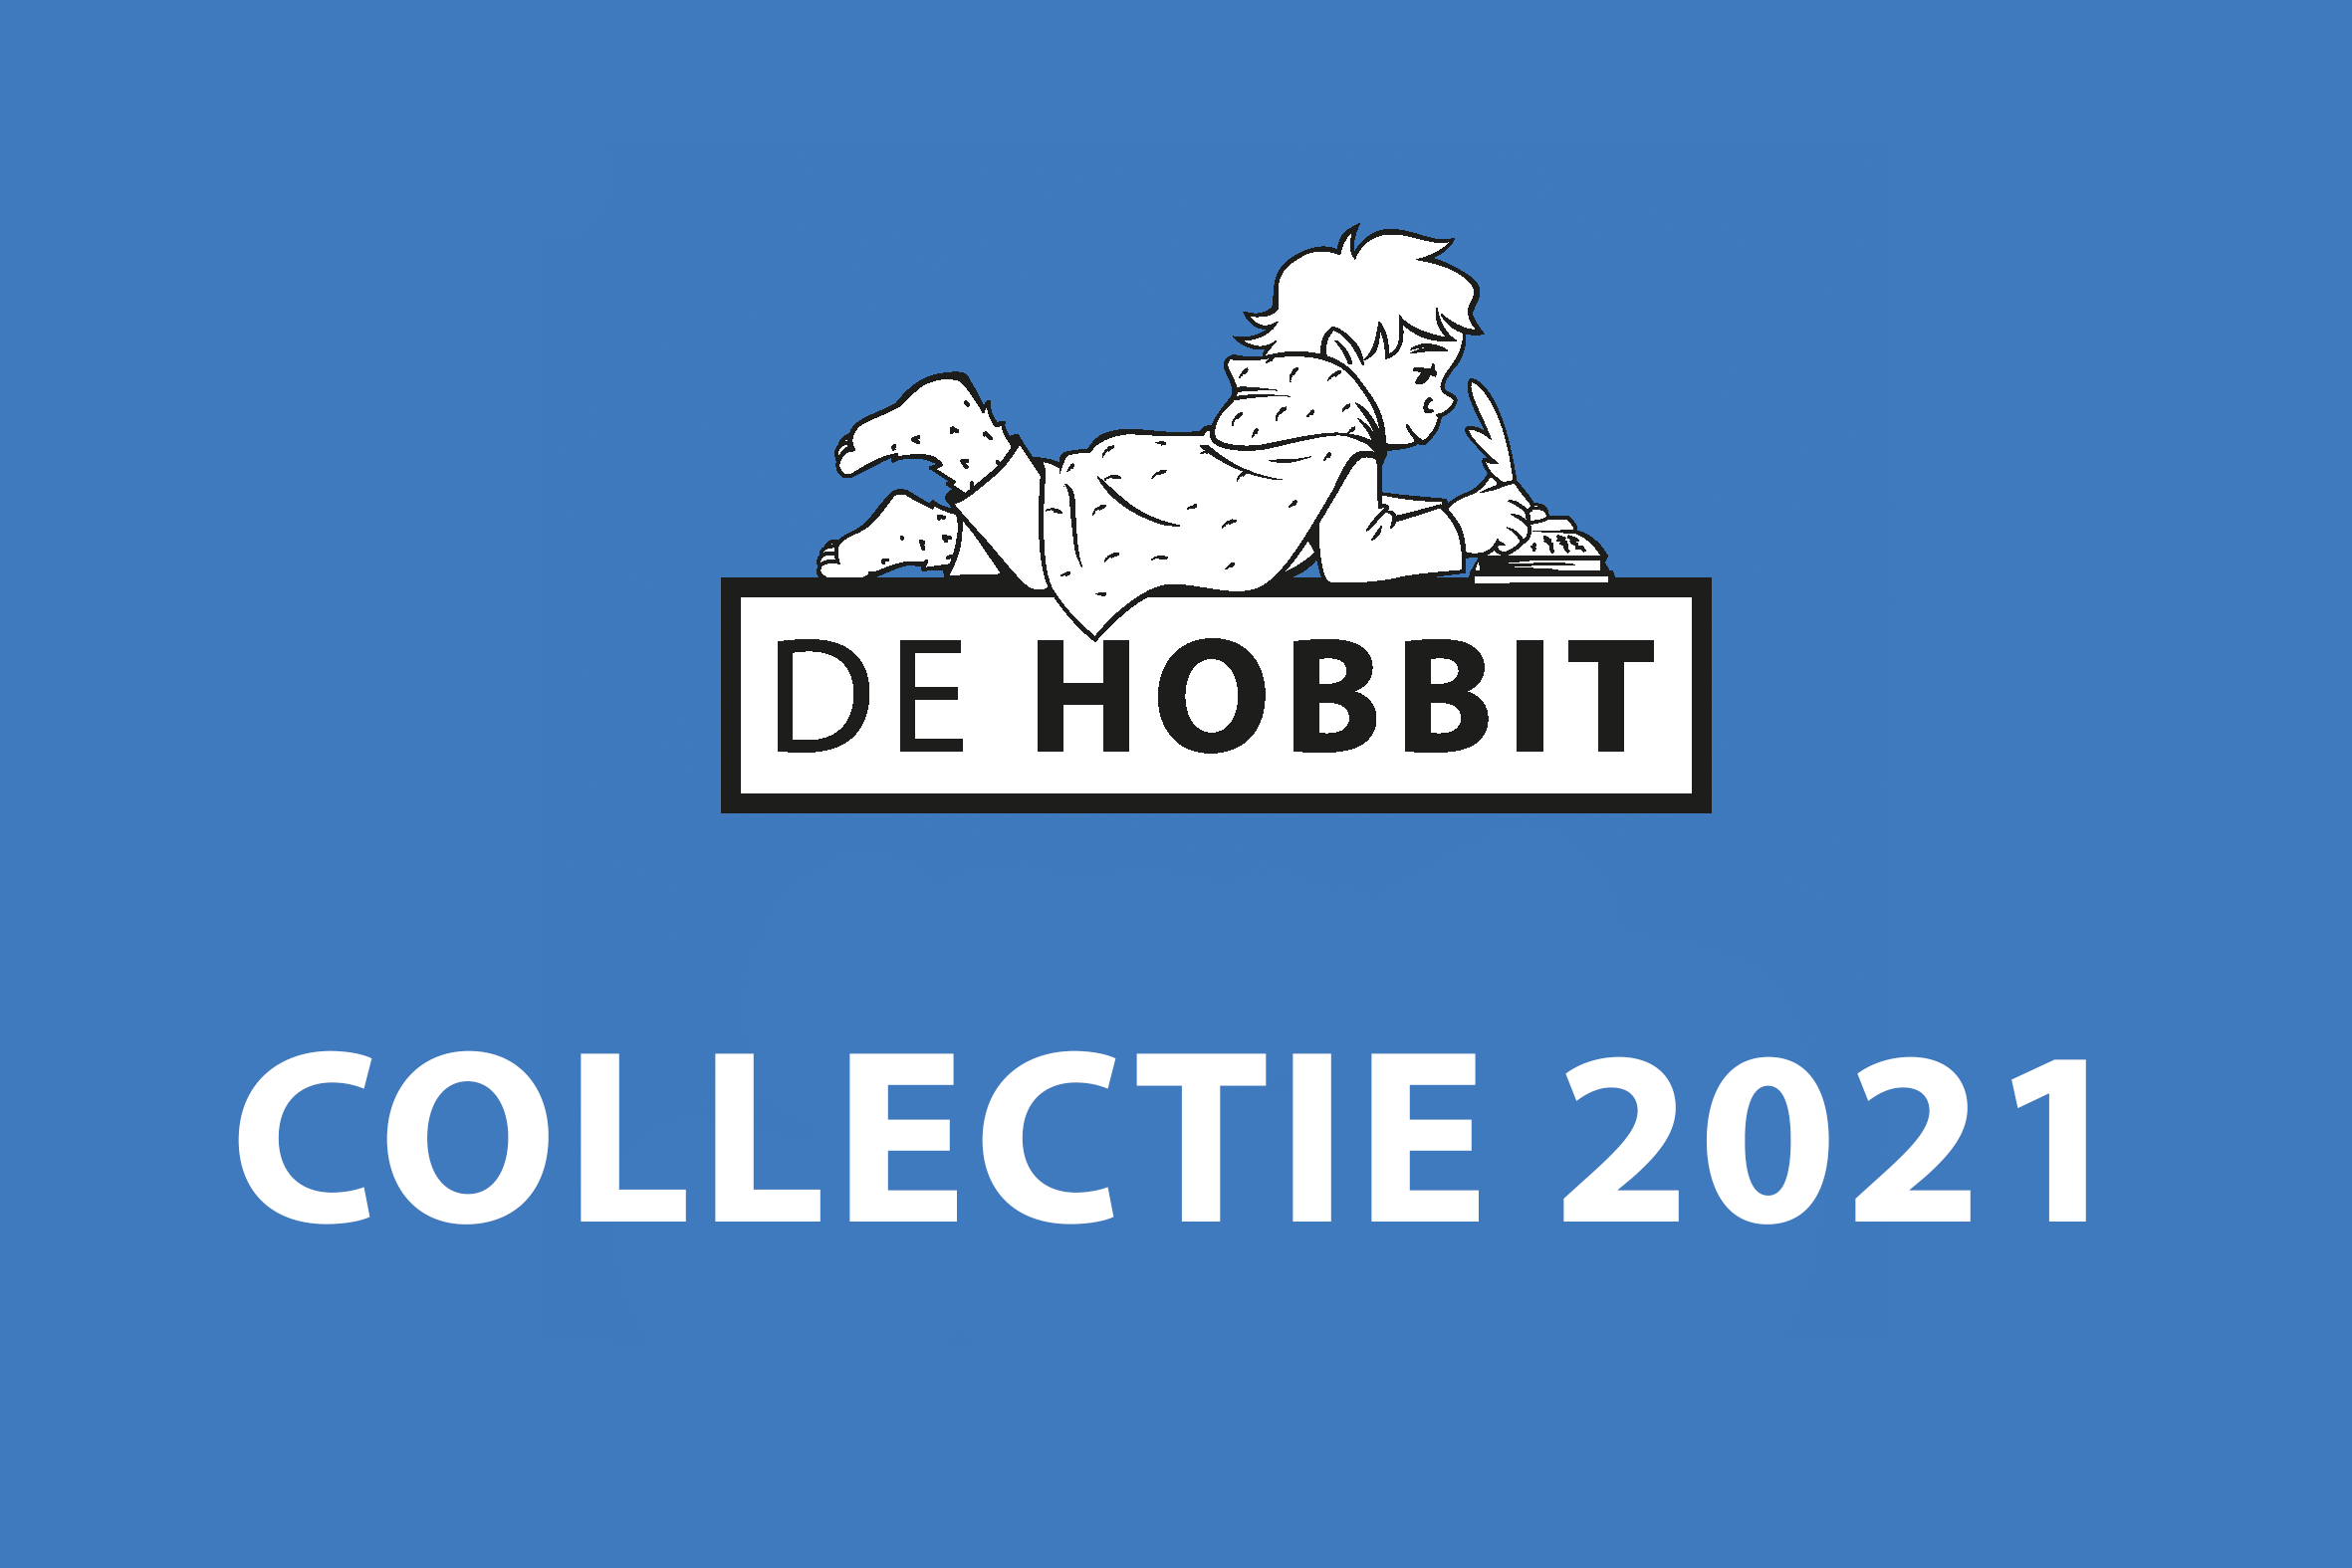 COLLECTIE 2021